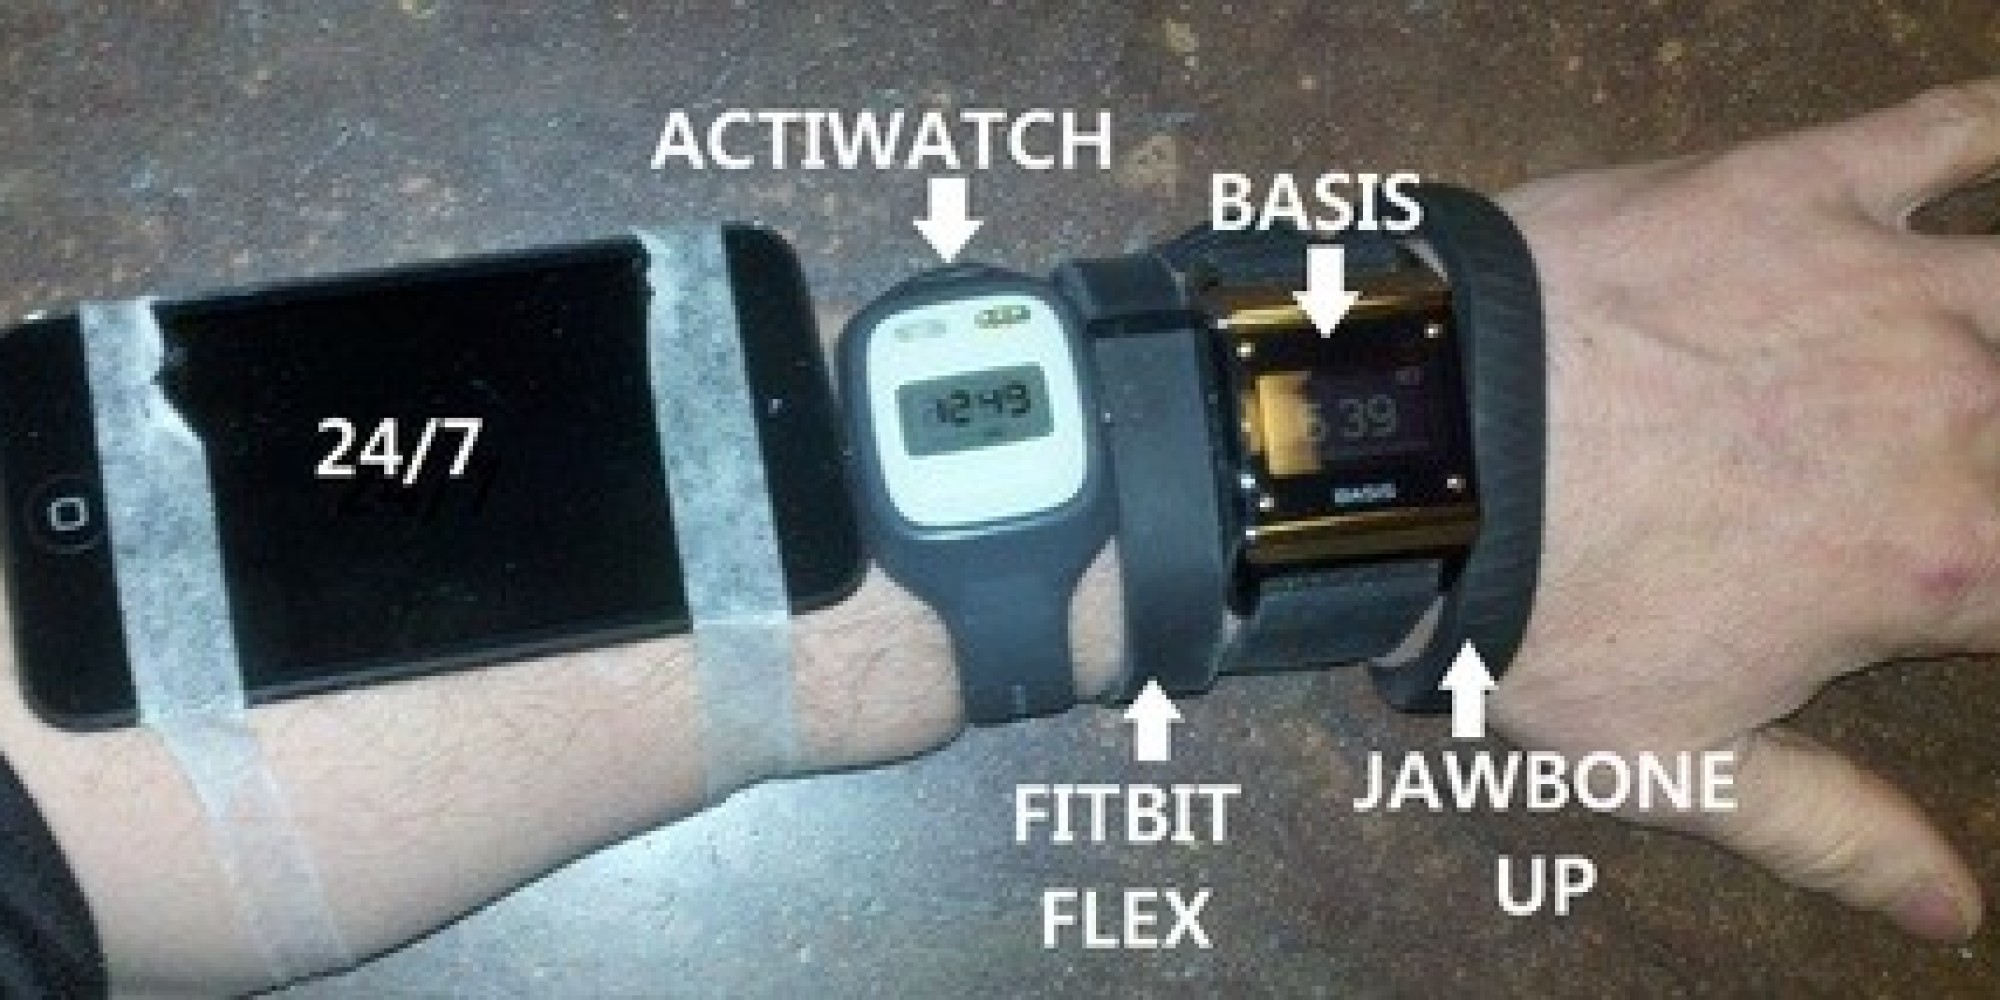 watches and watch ios health all smart for smartphone android card sim product package bracelet samsung basis nfc slot with bluetooth